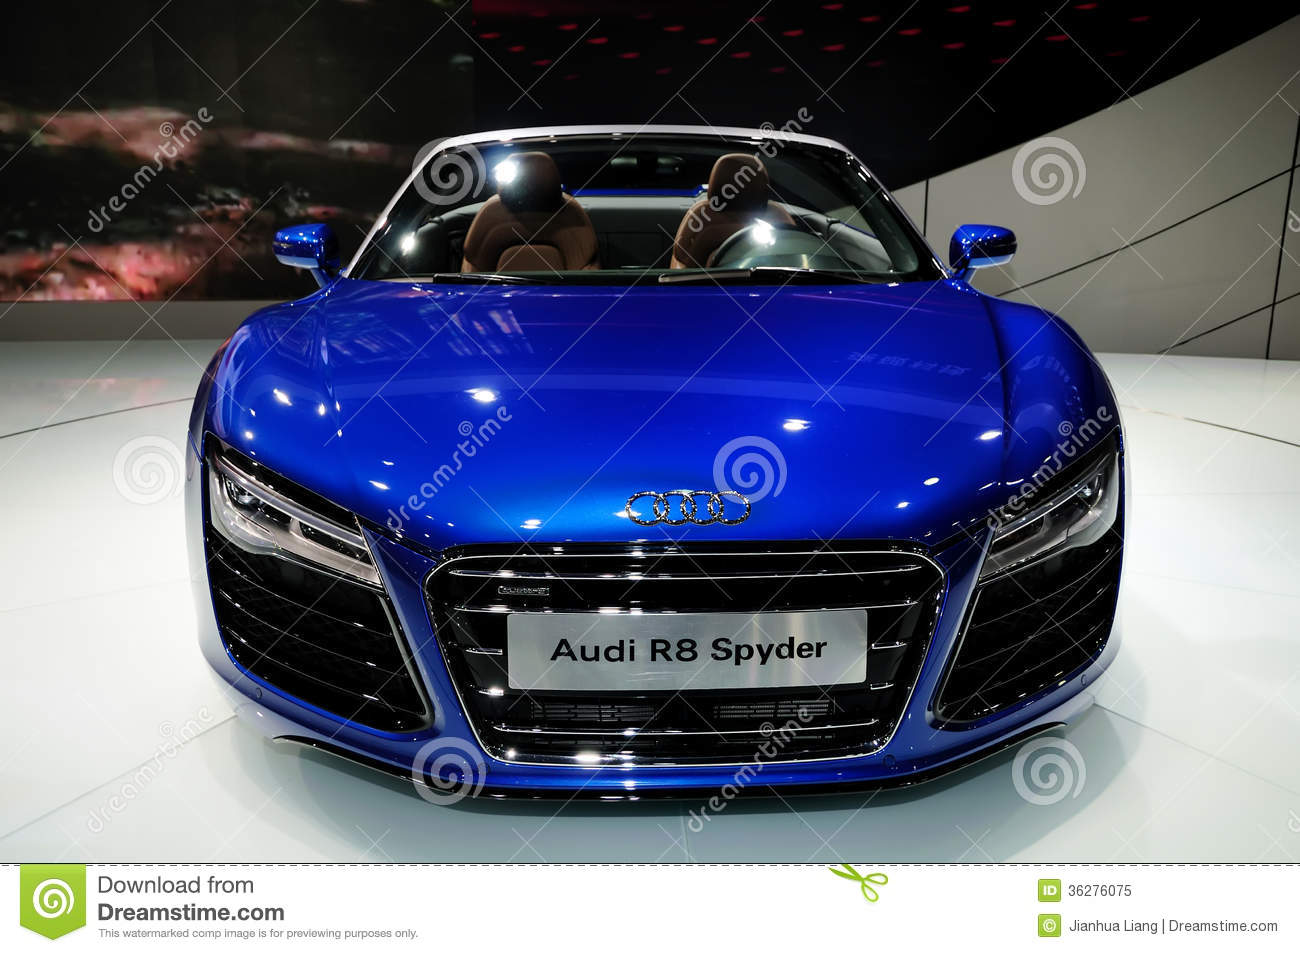 Audi R8 Spyder Convertible Sports Car